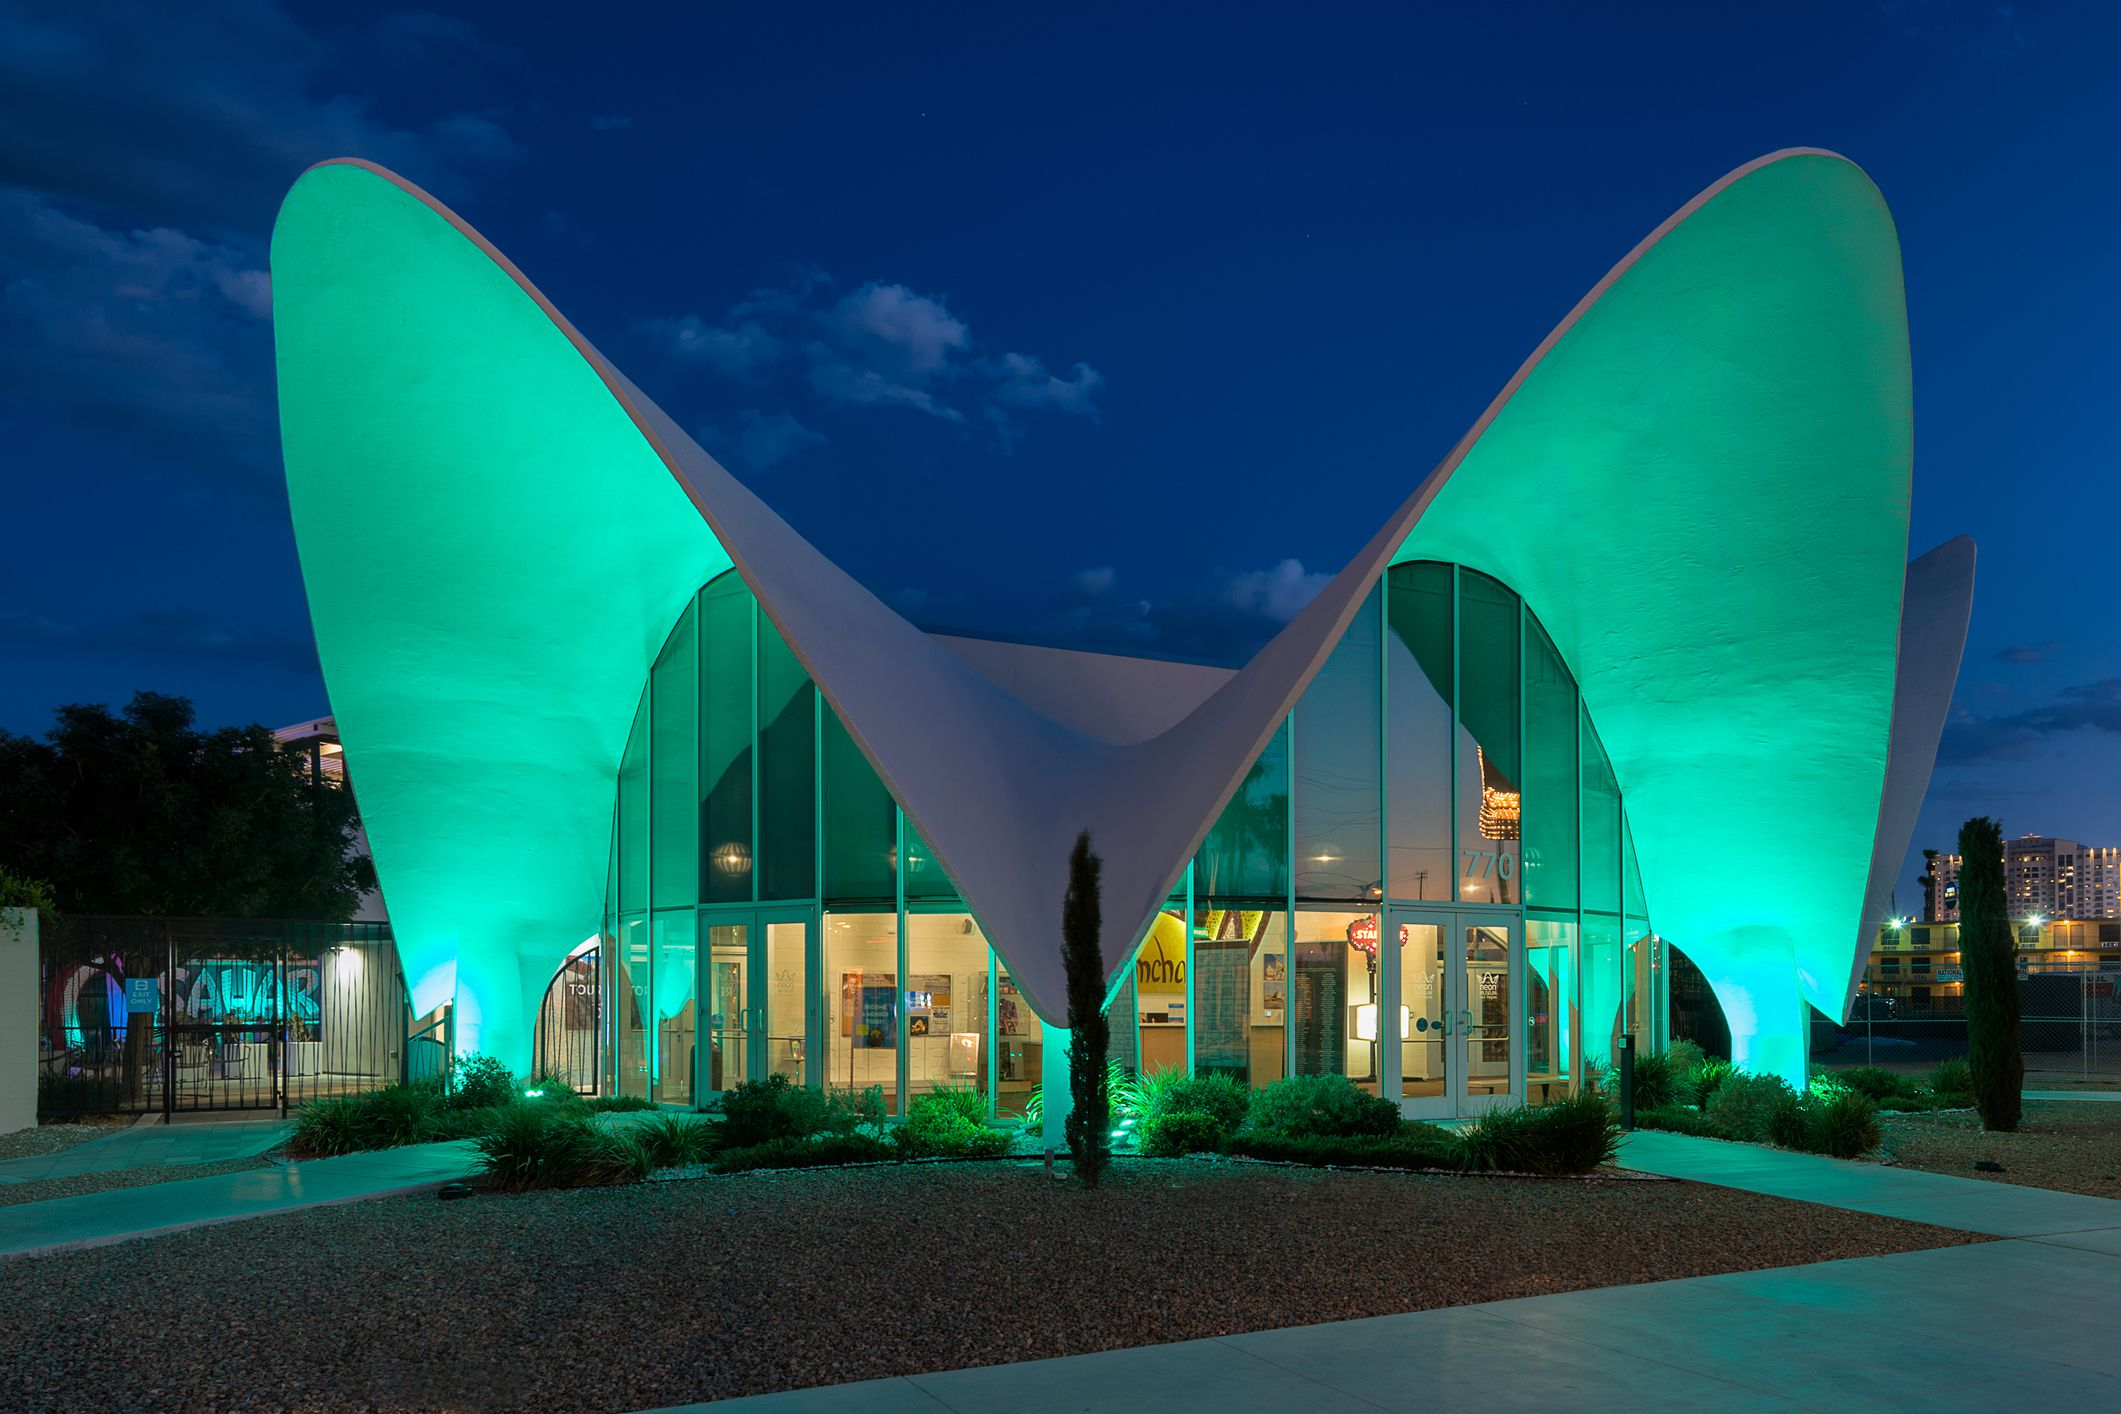 The Best Museums to Visit in Las Vegas